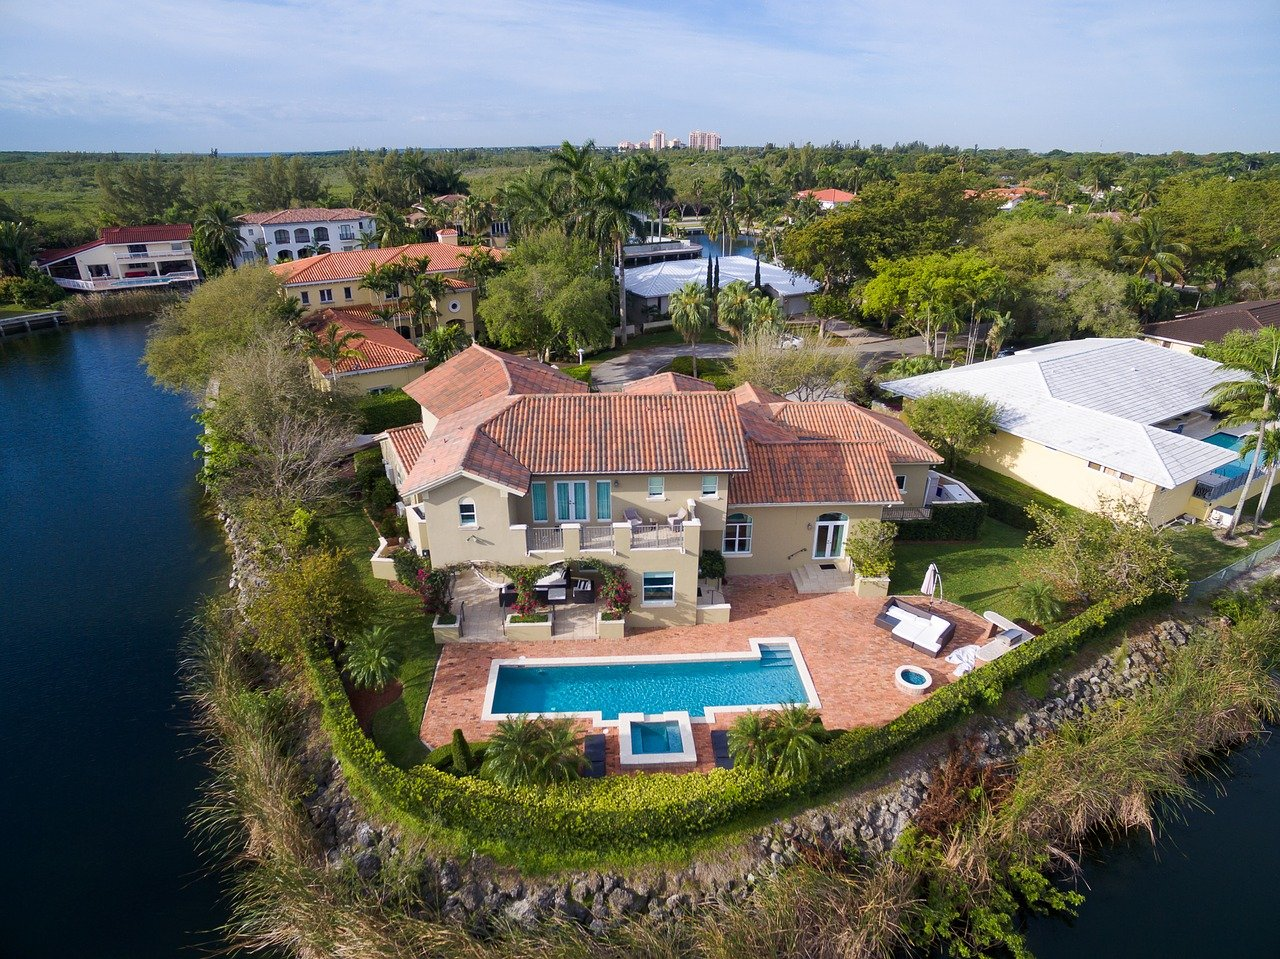 You'll need almost two decades to save up for a house in South Florida